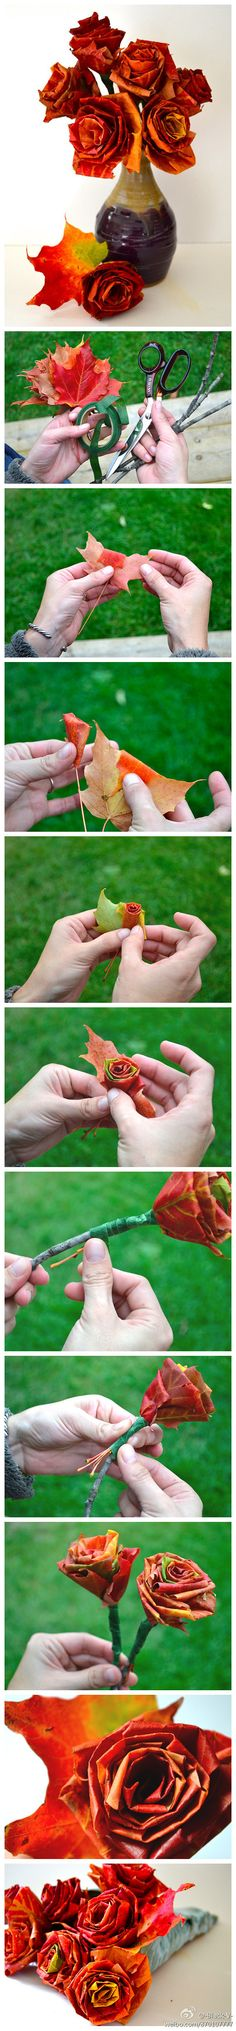 Make roses with maple leaves